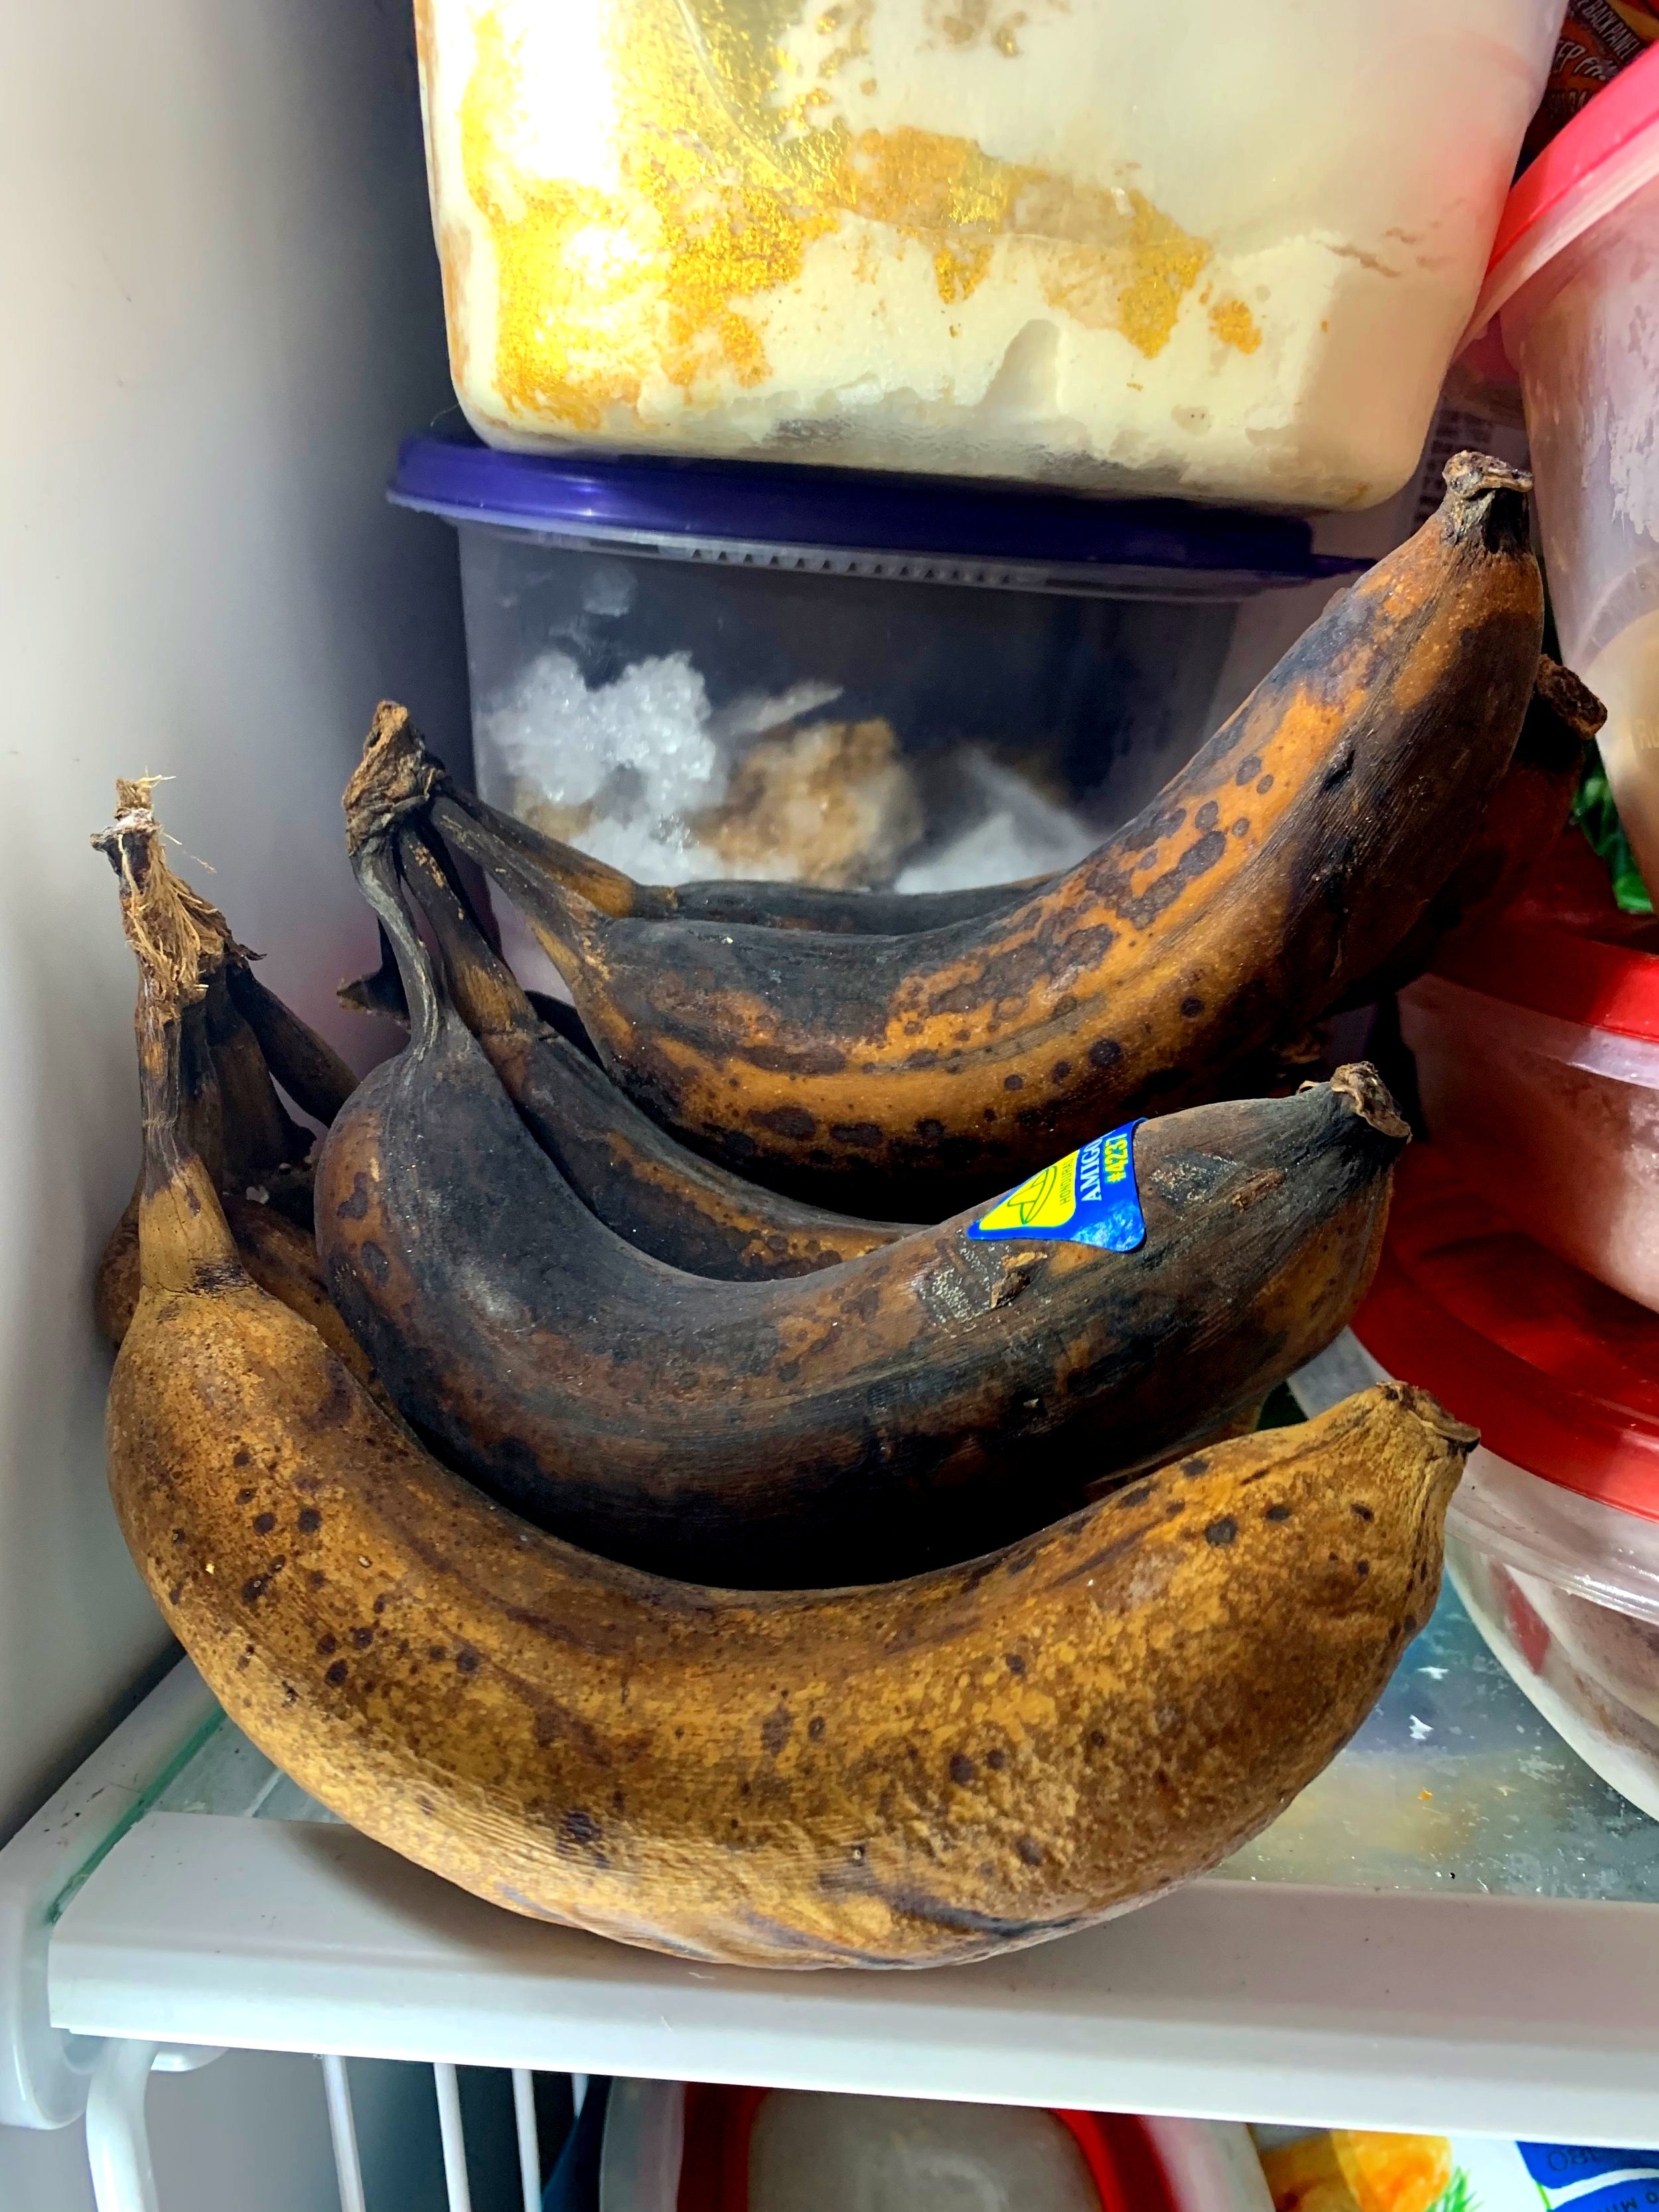 Freeze your bananas with the peel on to prevent food waste.